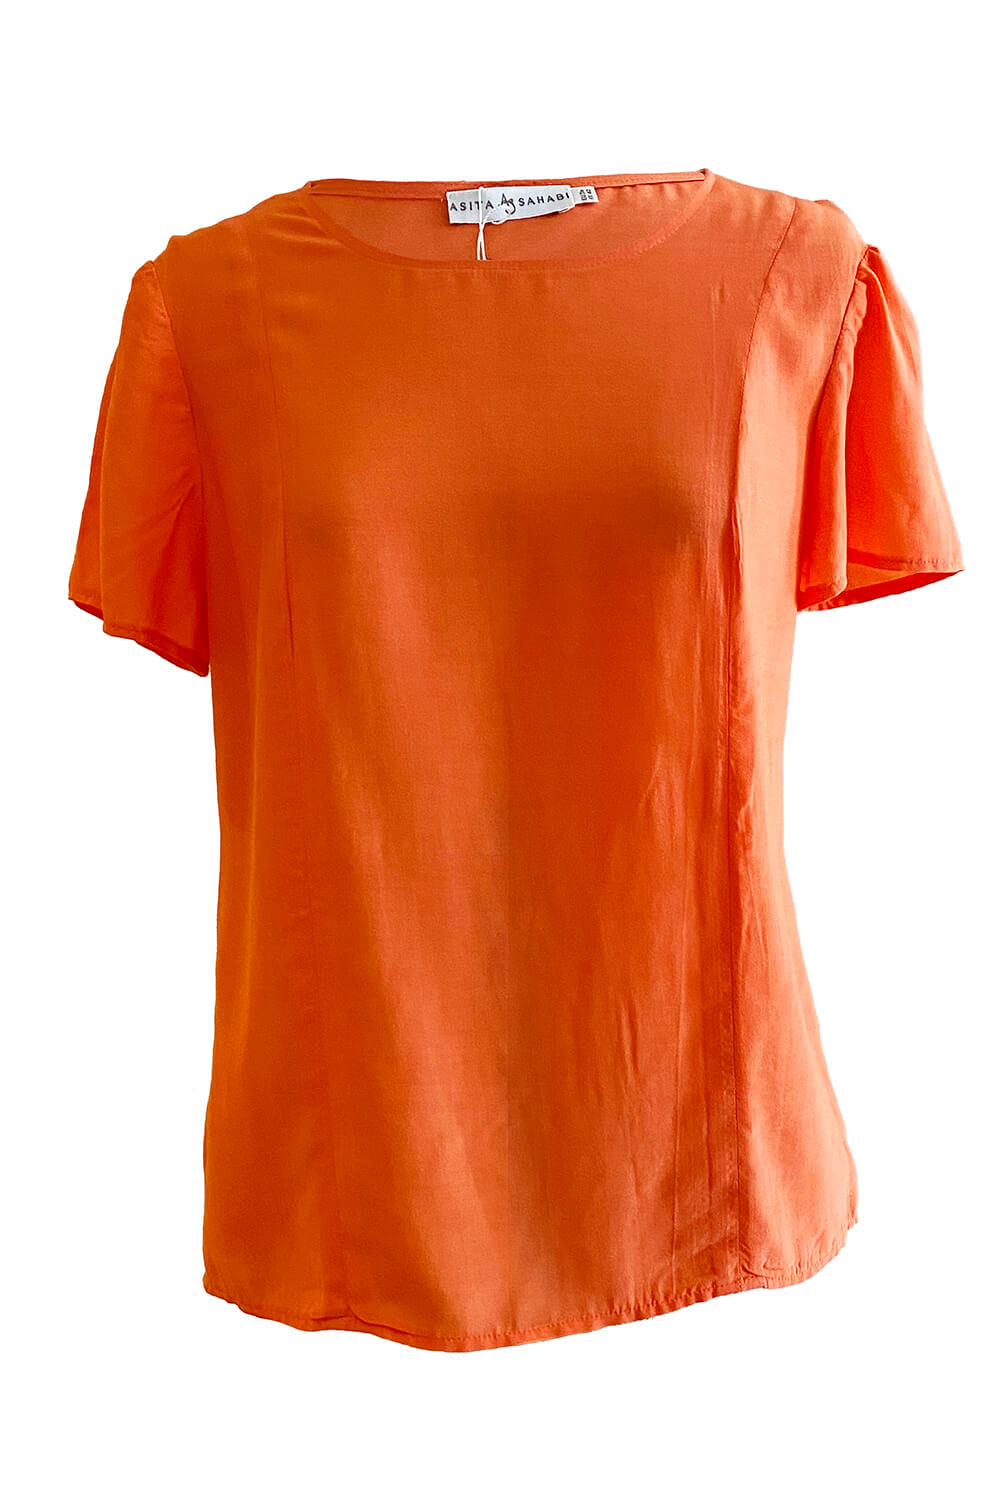 short sleeved blouse top ARANCIA in coral red viscose